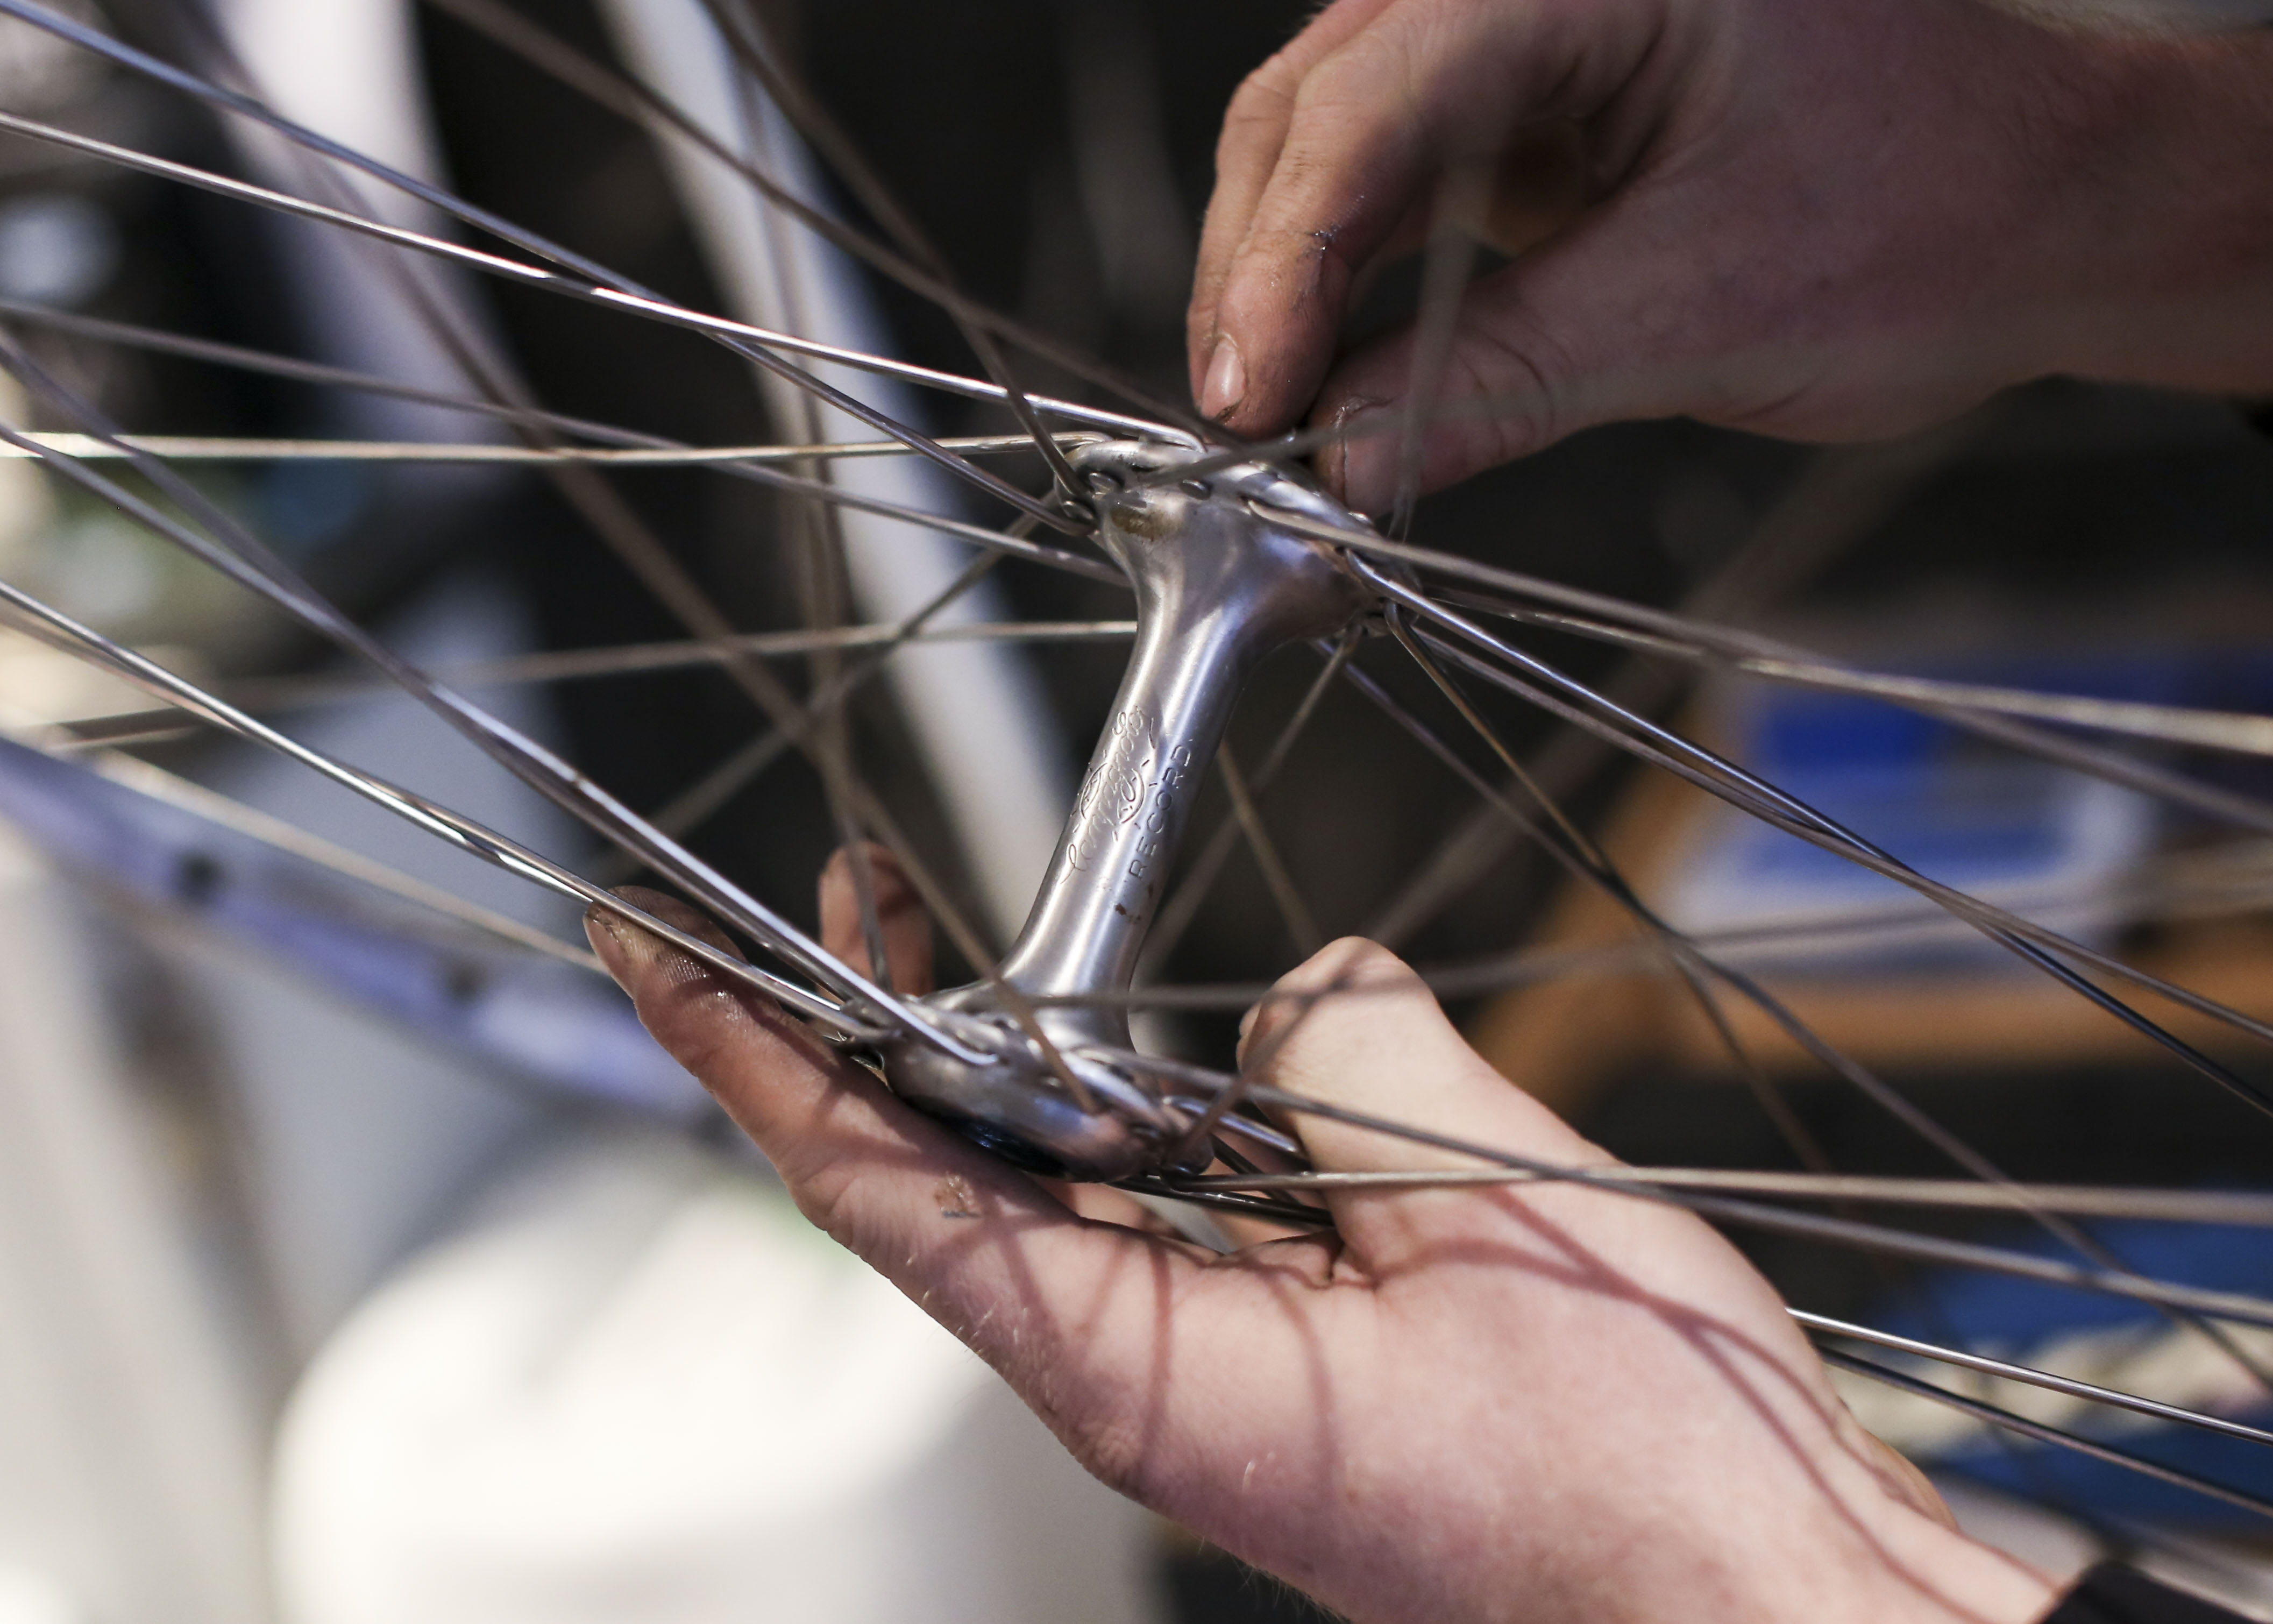 One of our mechanics examines a wheel.